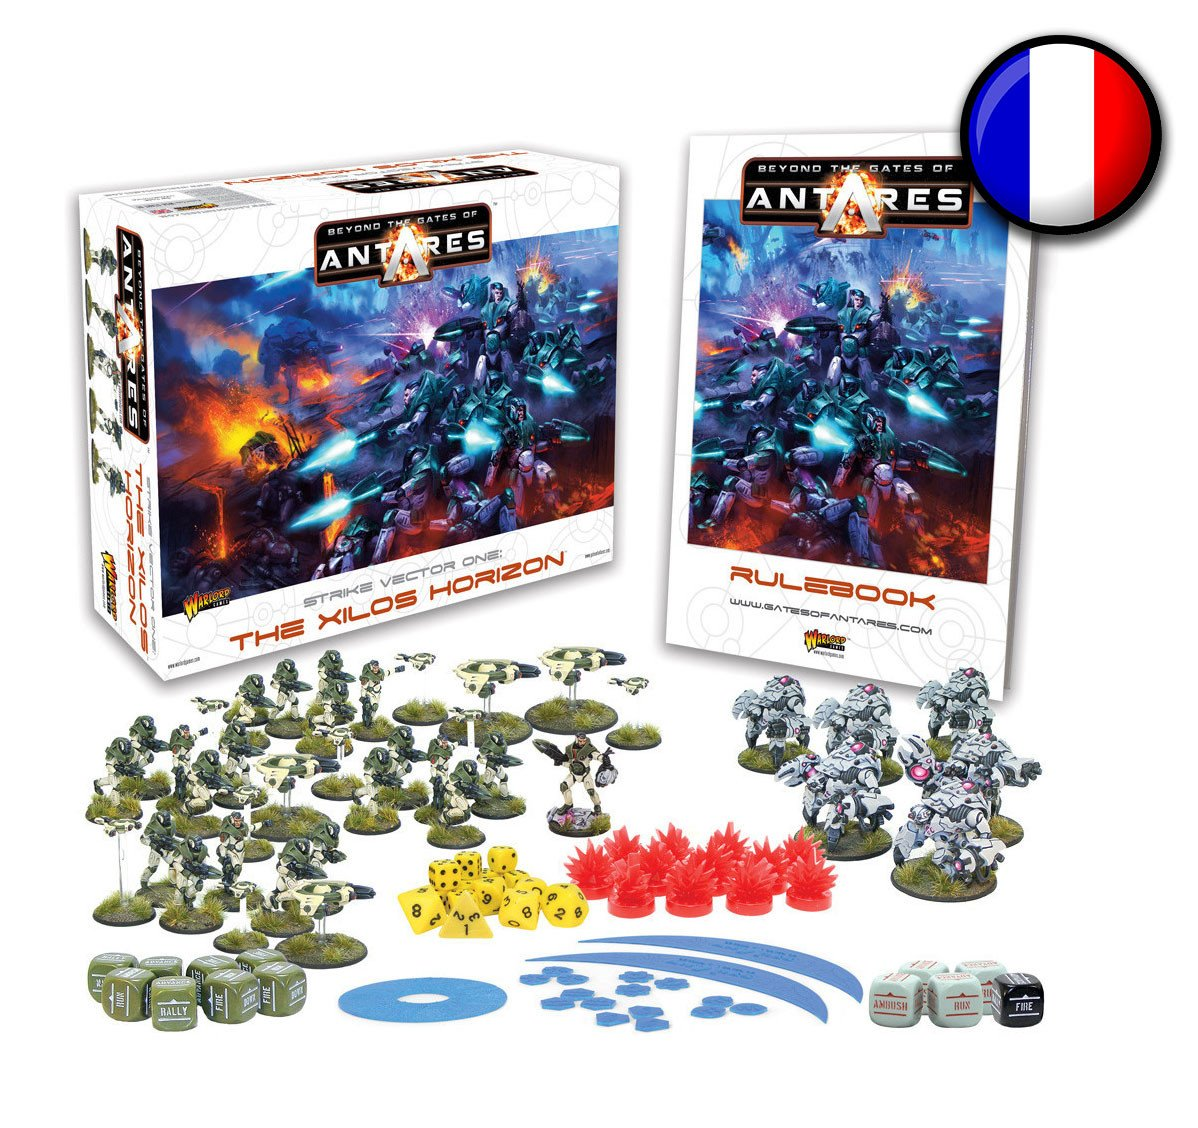 French Beyond the Gates of Antares starter set